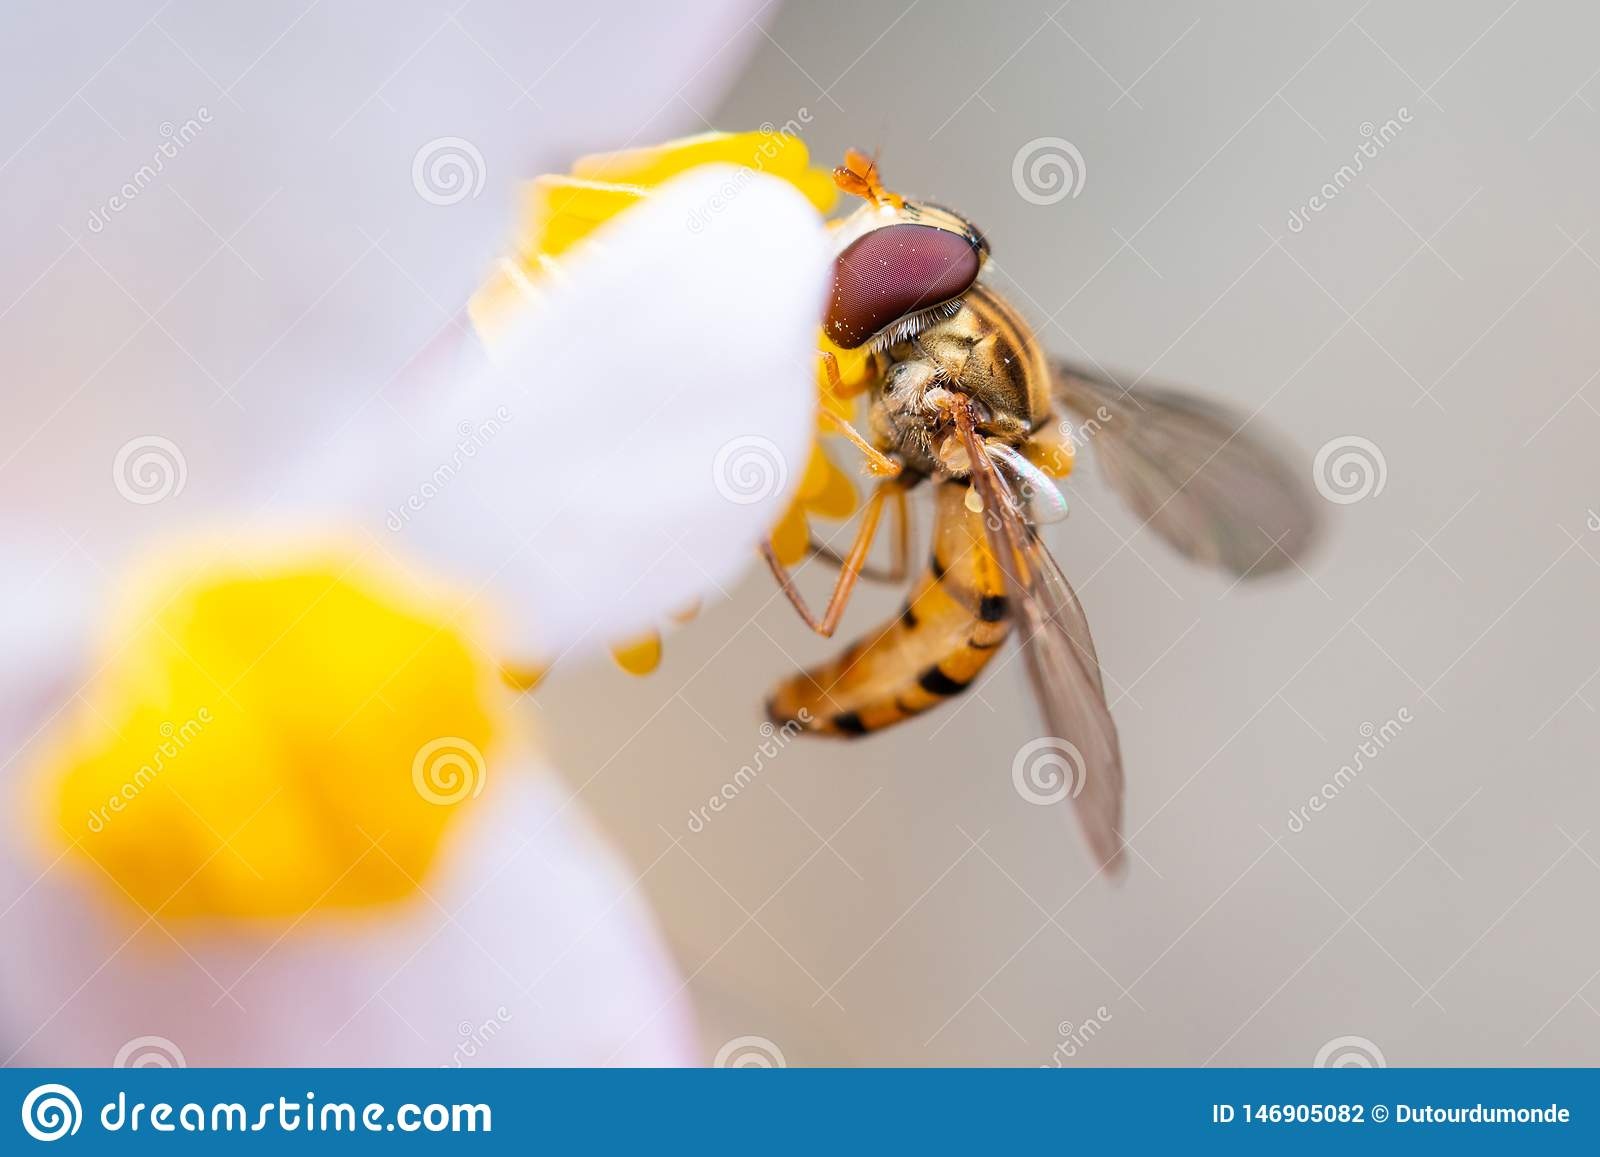 Marmalade hoverfly on a flower eating pollen